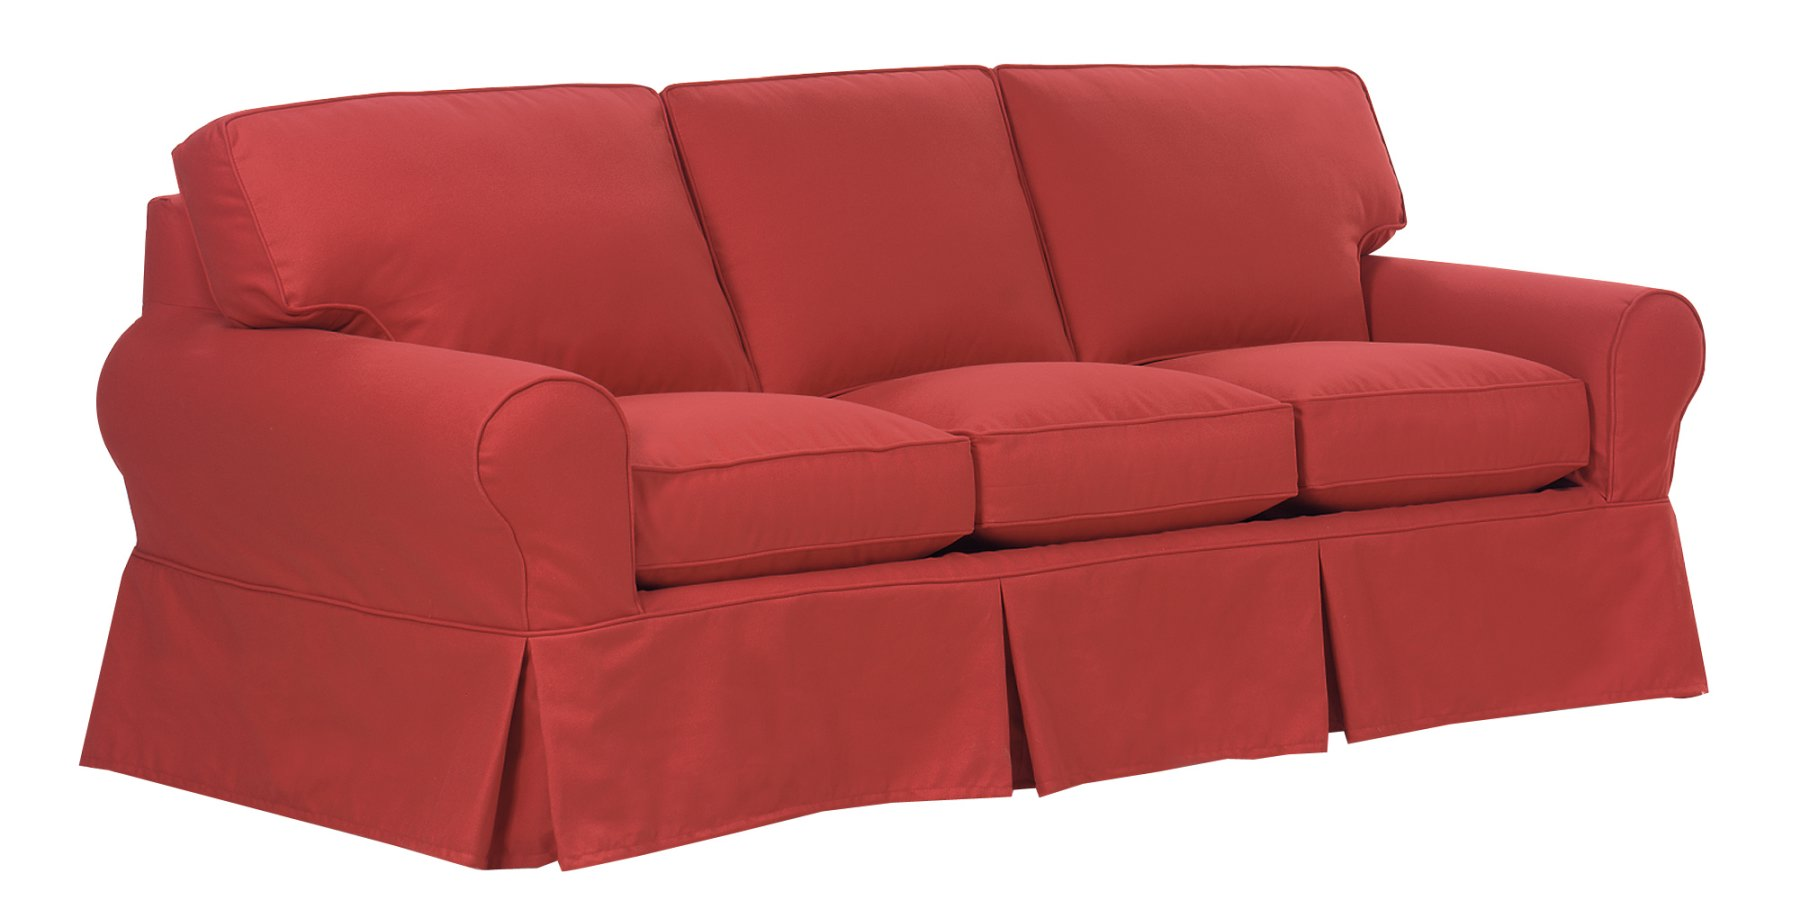 Chloe Slipcovered Sleeper Sofa Club Furniture